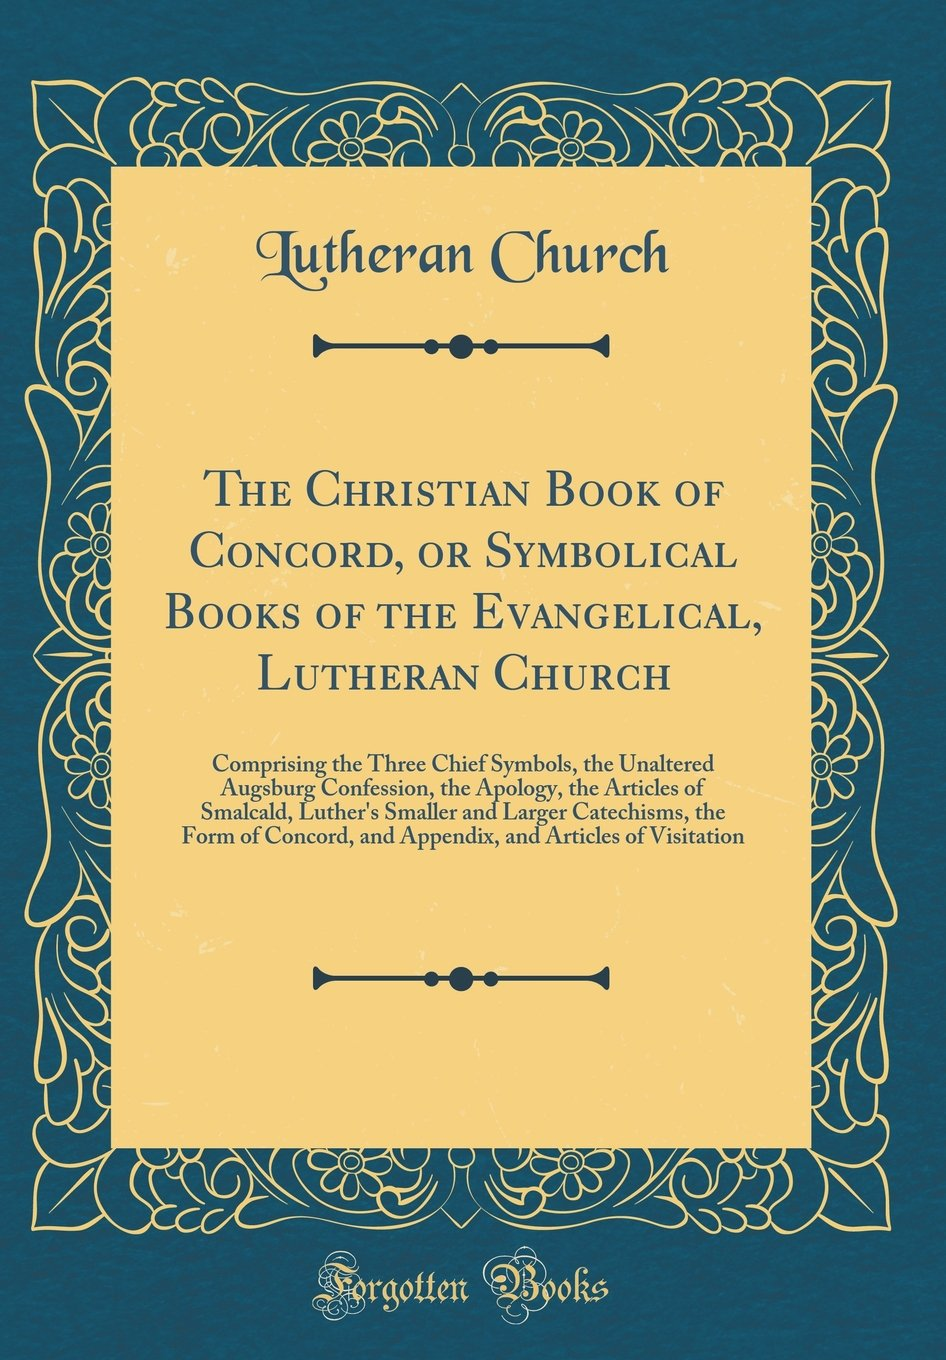 The Christian Book Of Concord Or Symbolical Books Of The